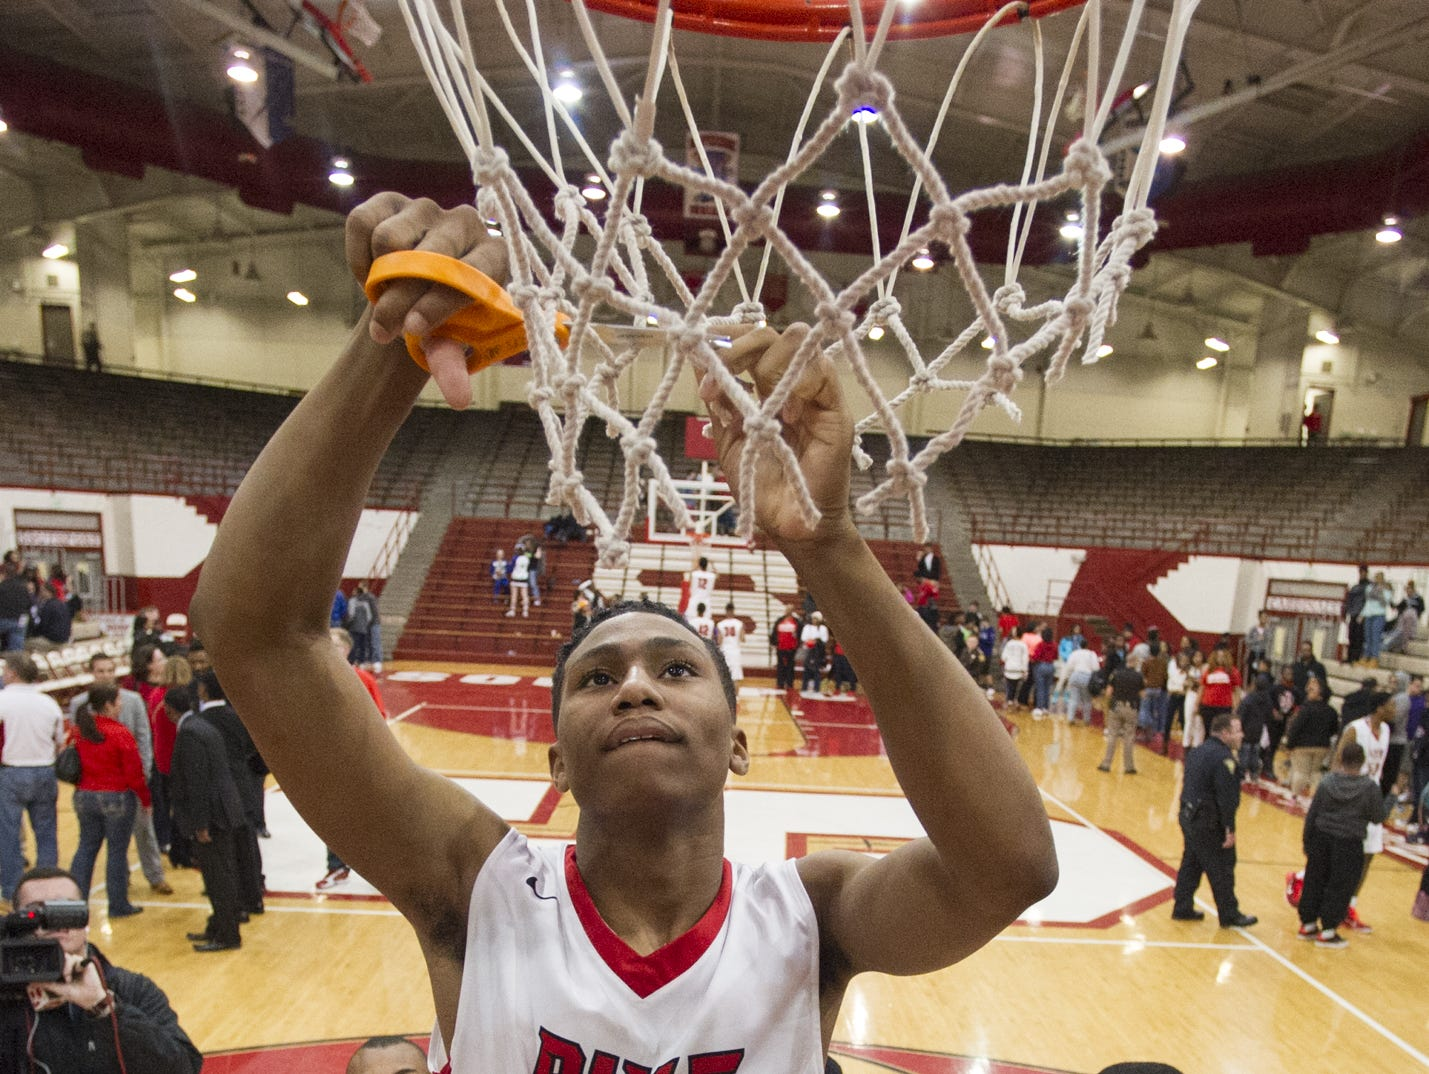 Pike cut down the nets in last year's Marion County tournament. Who will need the scissors this year?